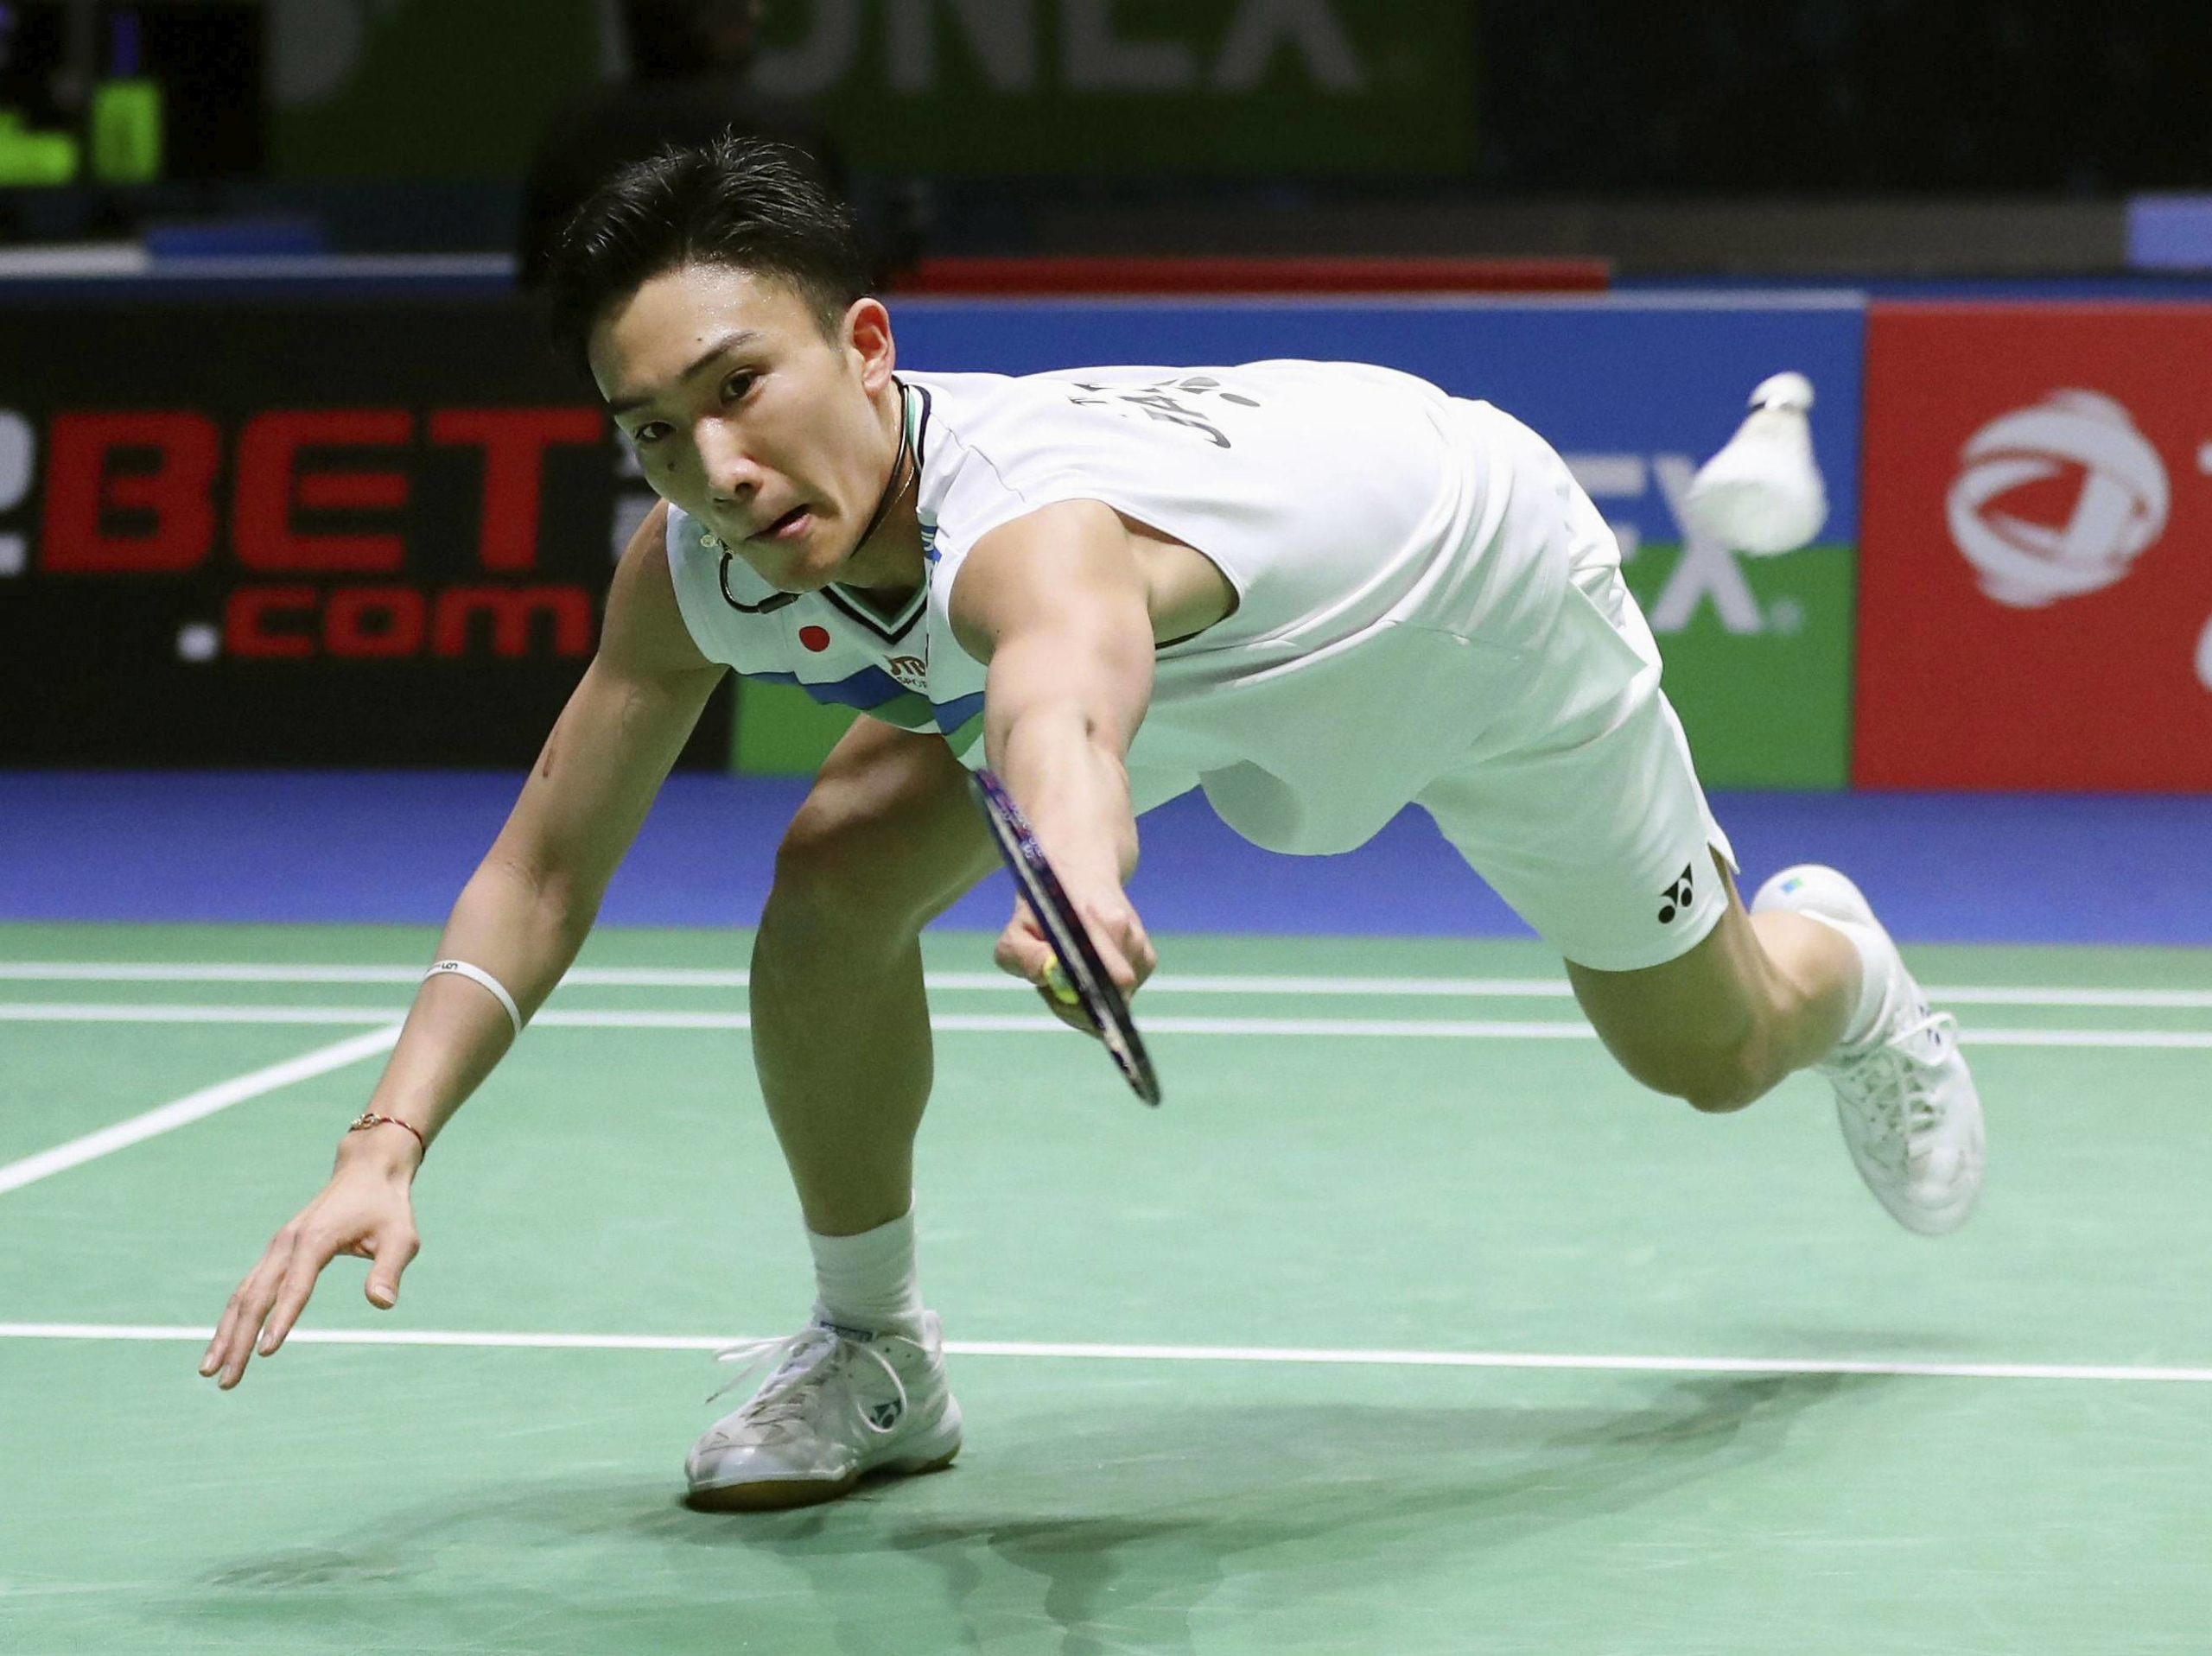 Kento Momota competes during the first round of the All England Open in Birmingham, England, on Wednesday. | GETTY / VIA KYODO